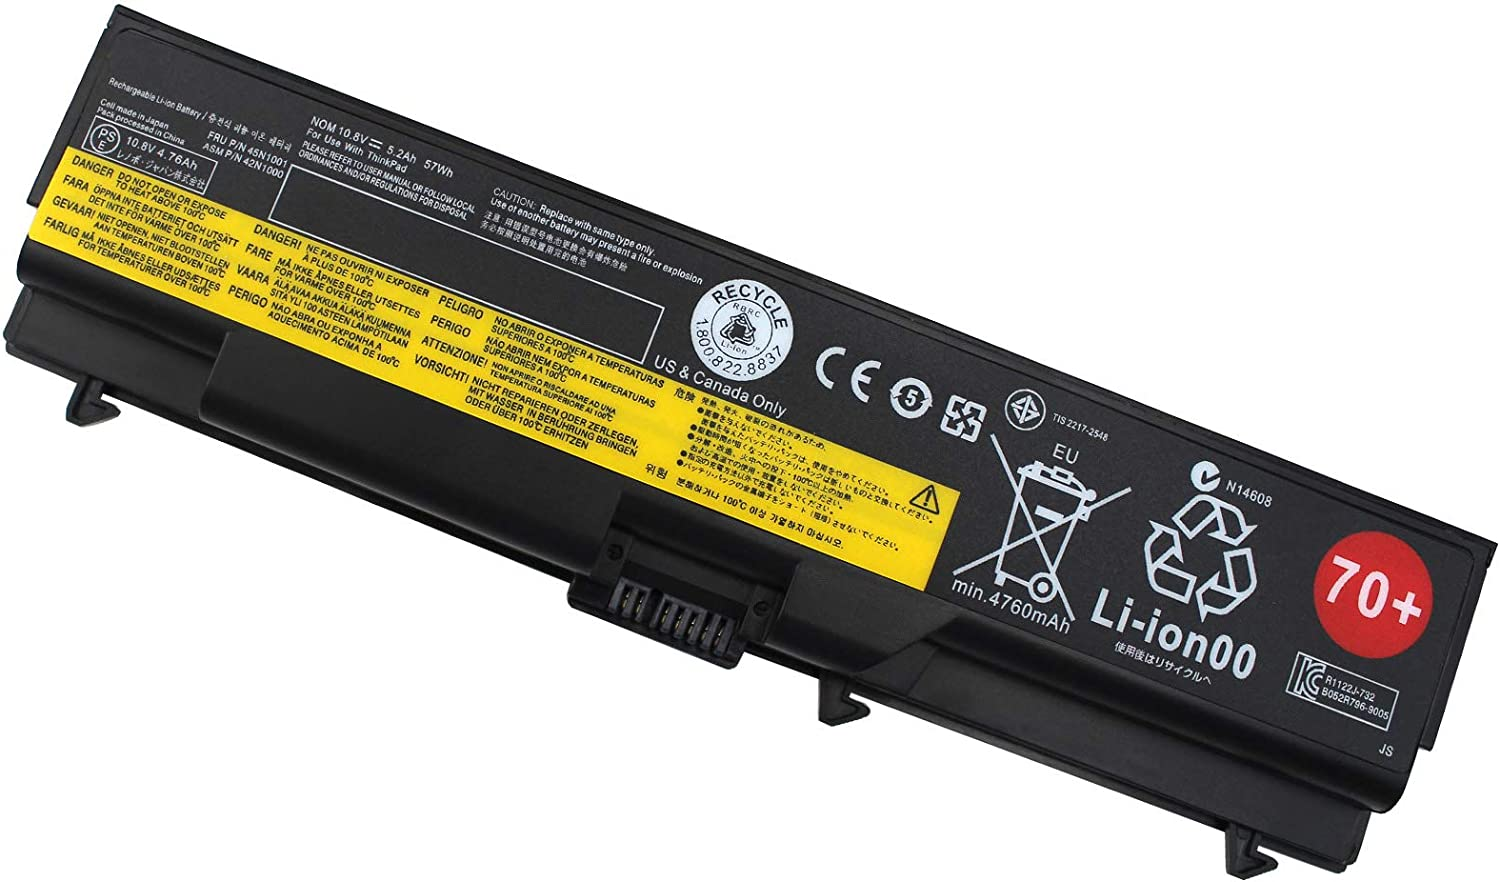 T430 Laptop Battery for Lenovo ThinkPad W530 W530i W520 W510 T410 T420 T420i T510 T520 T530 L412 L420 L430 L512 L520 L530 0A36303 45N1001 0A36302 42T4791 45N1011 45N1005 42T4235